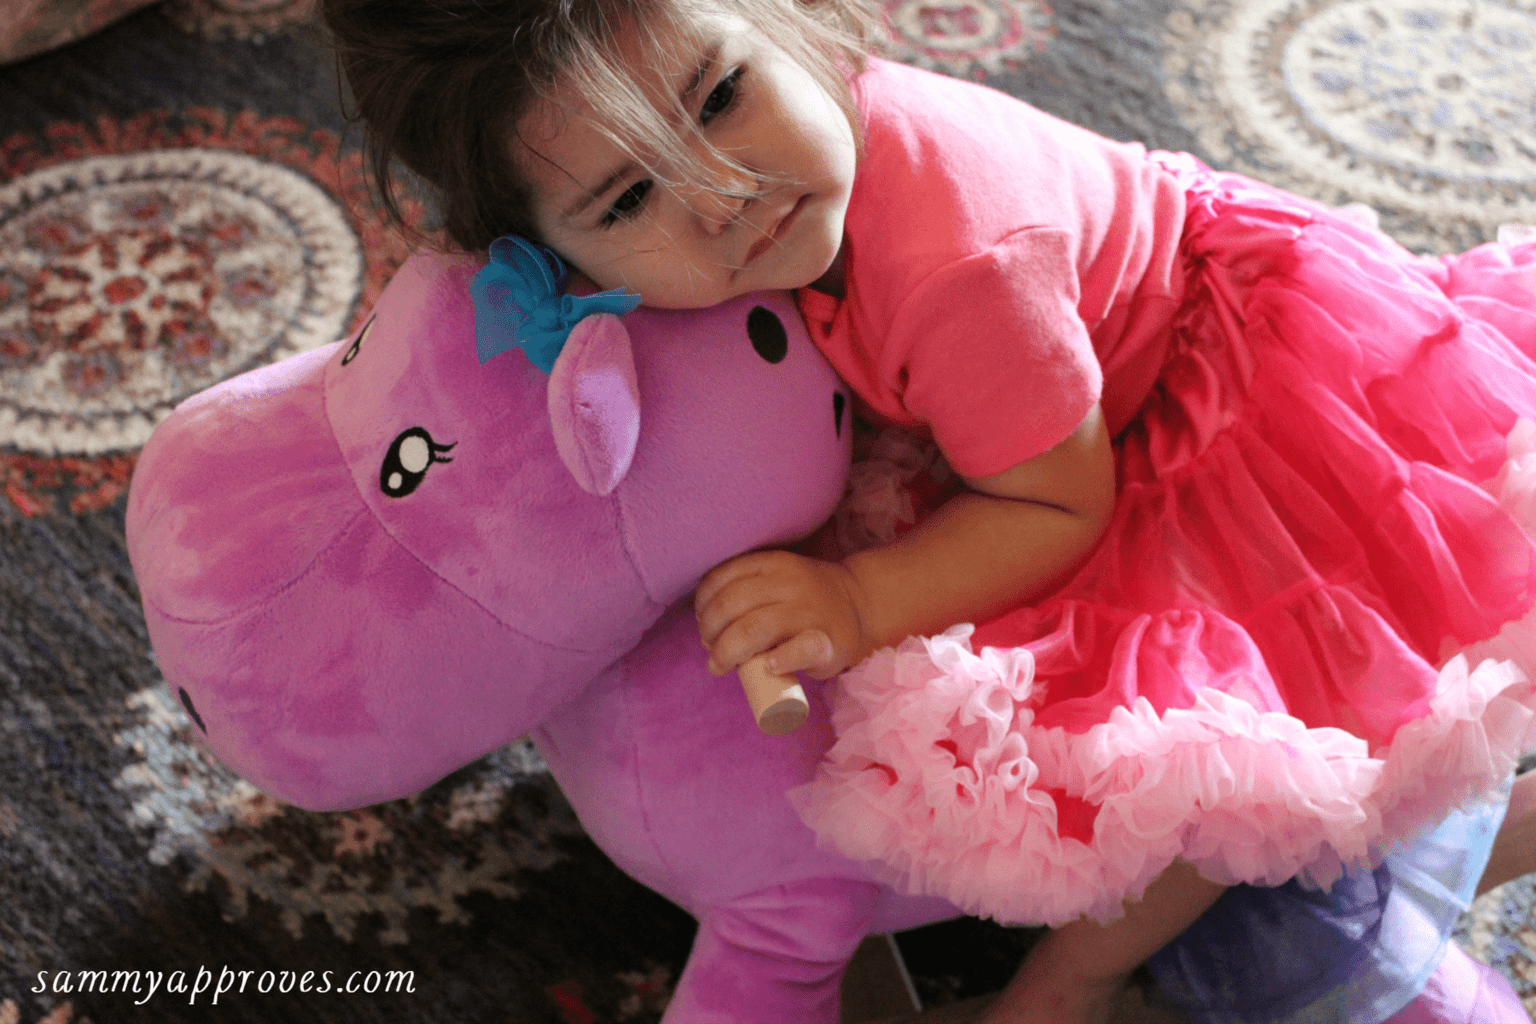 Toddler Solo Play With RockABye Rockers